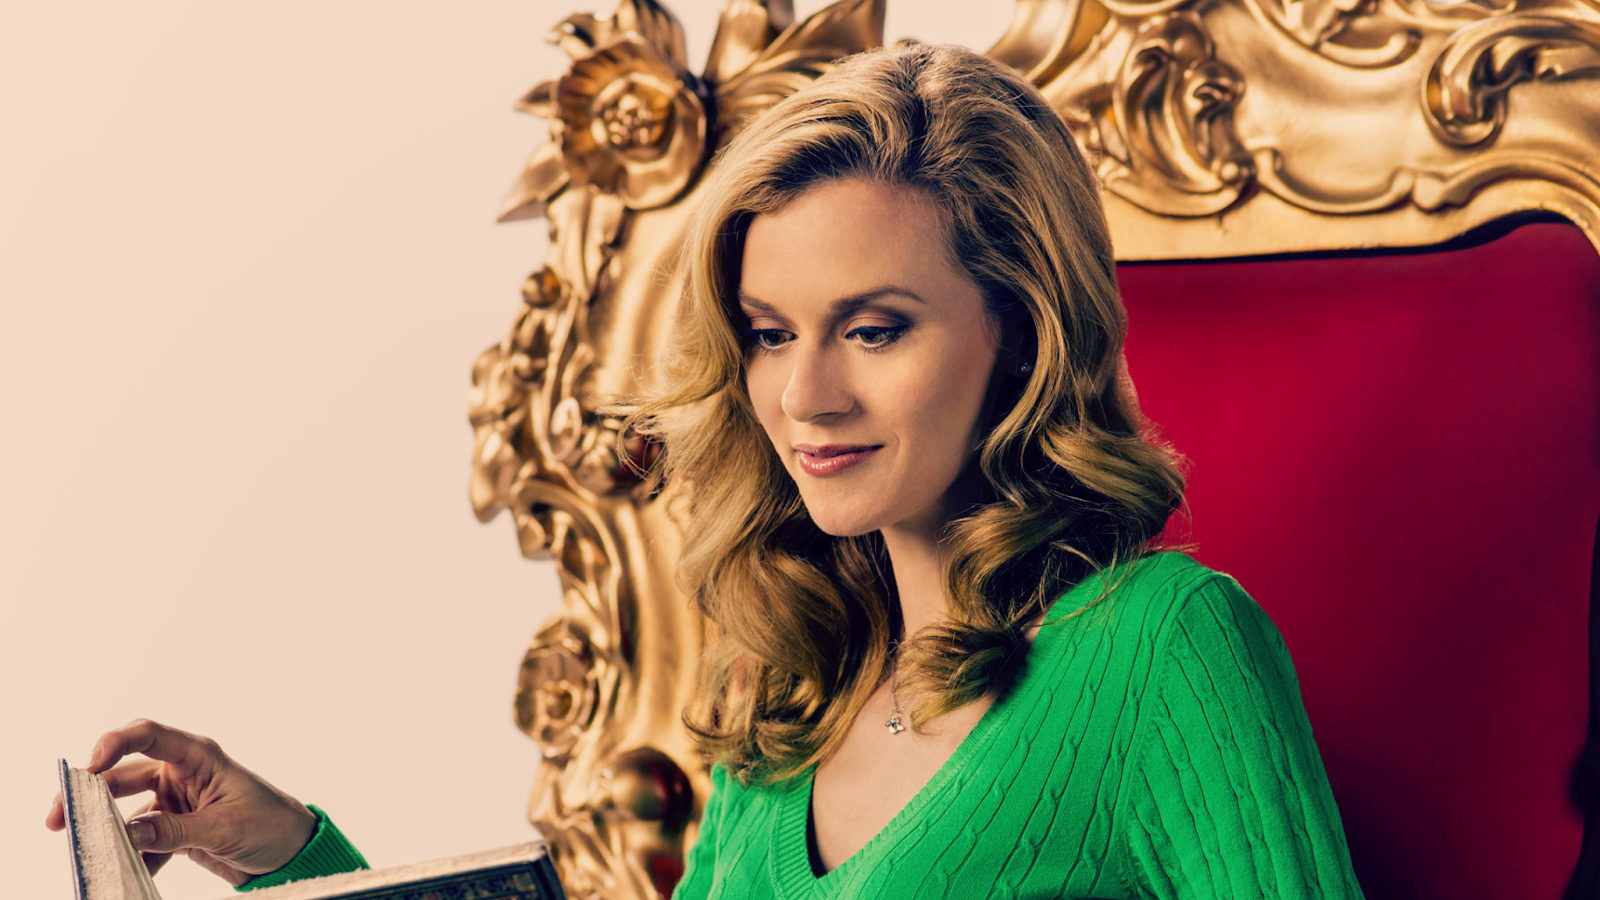 Promotion Picture for Hallmark Channel's 'Naughty or Nice' starring Hilarie Burton